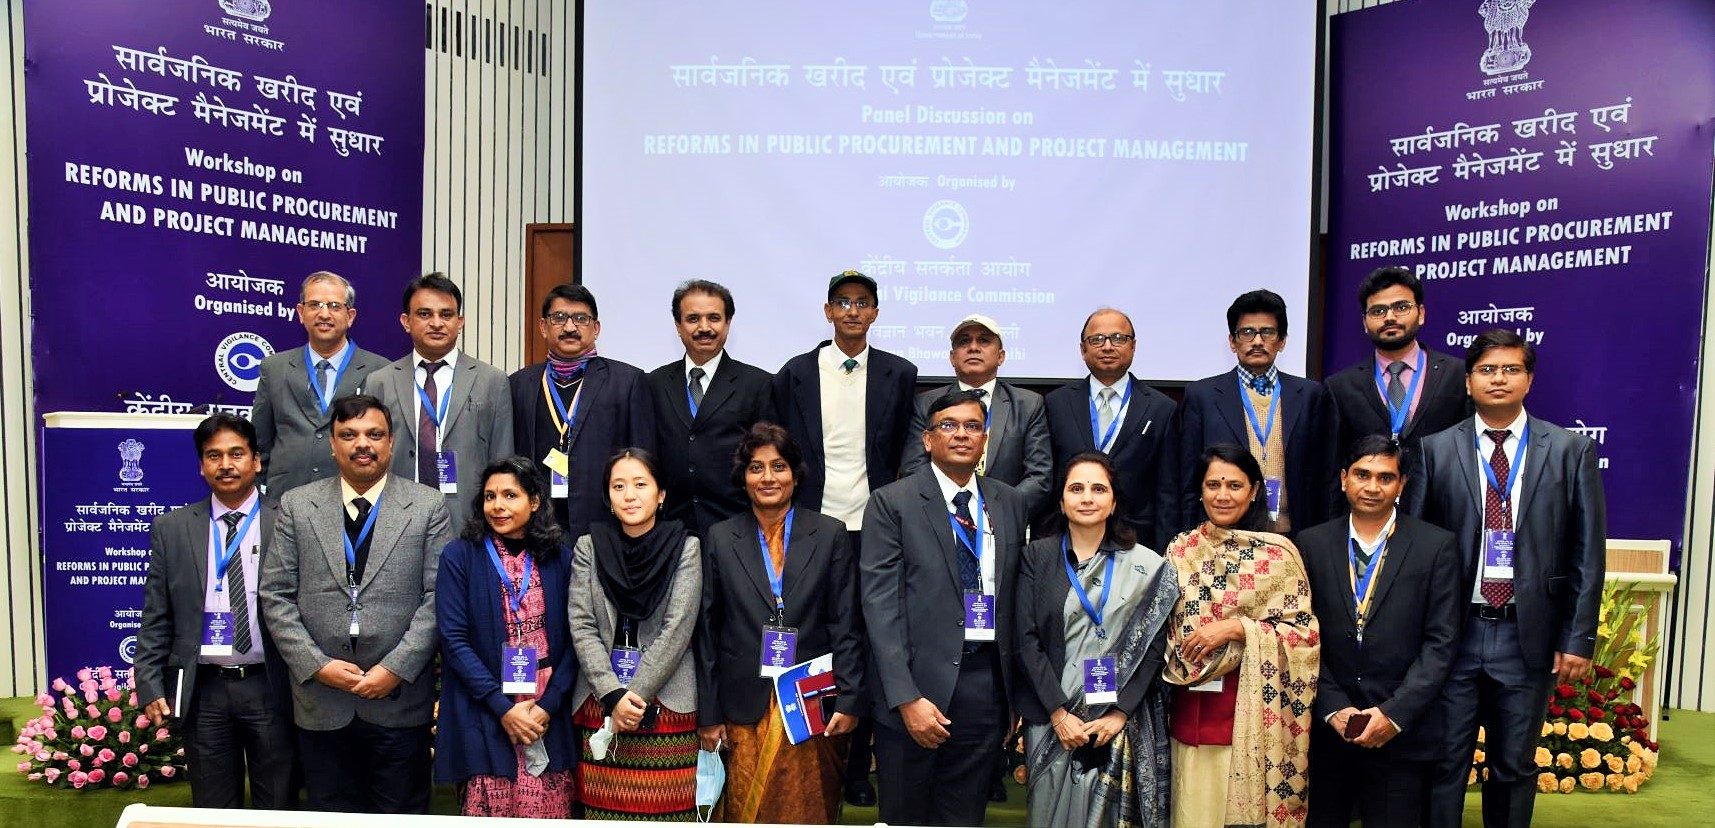 Conference on Reforms in Public Procurement and Project Management